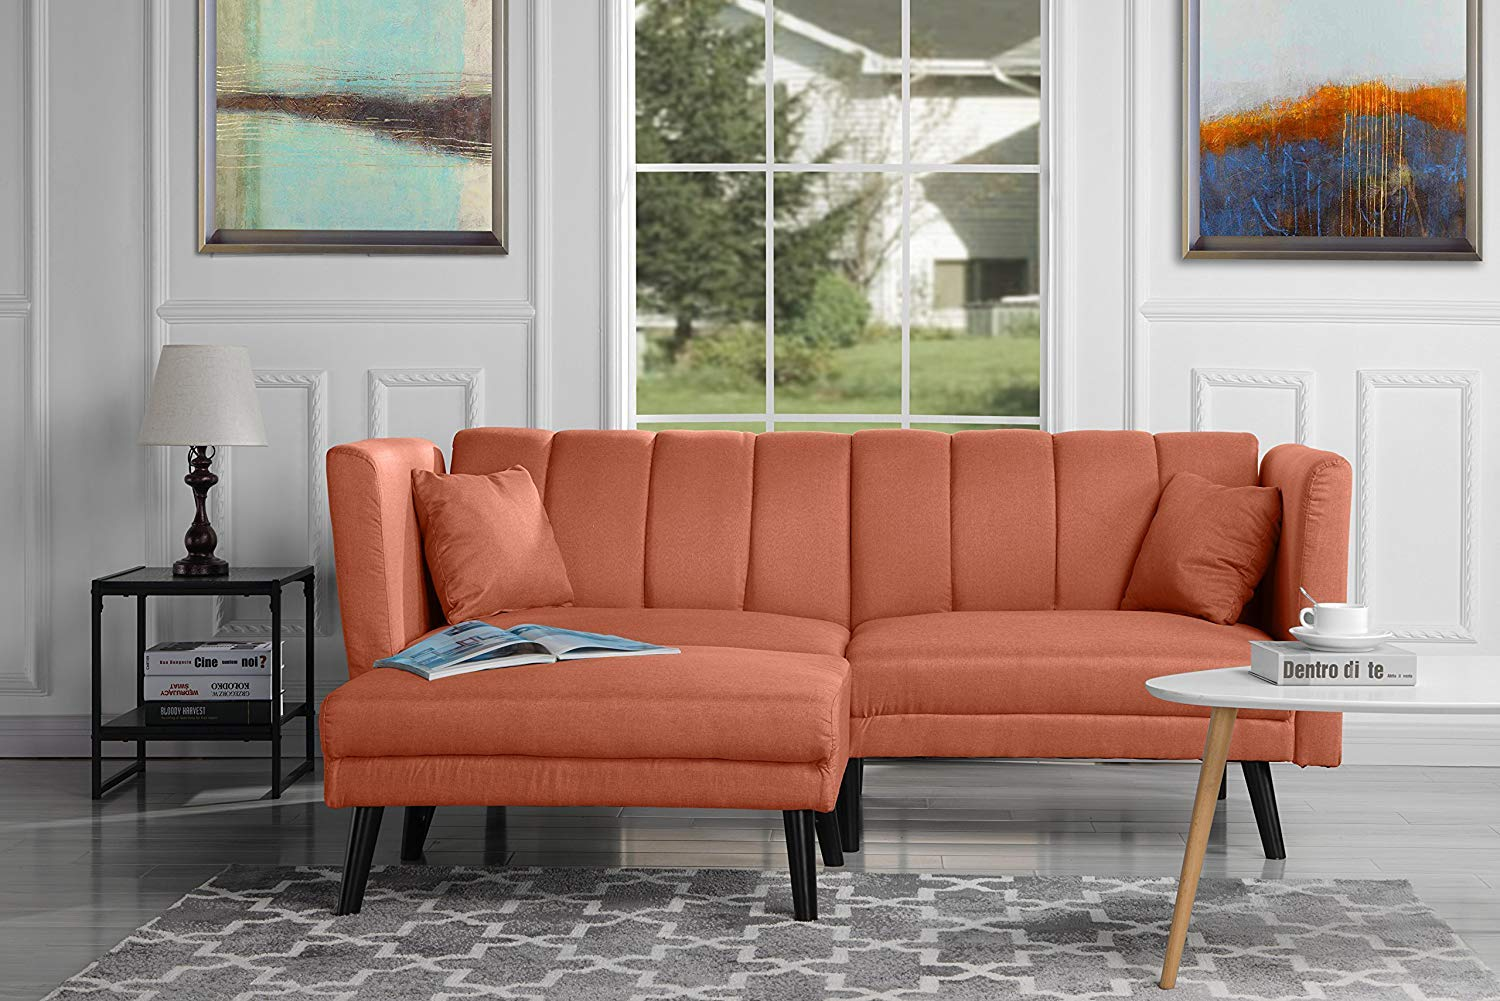 Futon Sleeper Sofa Bed Couch, Convertible Orange Futon Splitback Sofa with Chaise (Sofa to Bed Feature) Modern Futon Sofa Beds L-Shaped Lounger Futon Sofa Couch for Small Space Living by Casa AndreaMilano